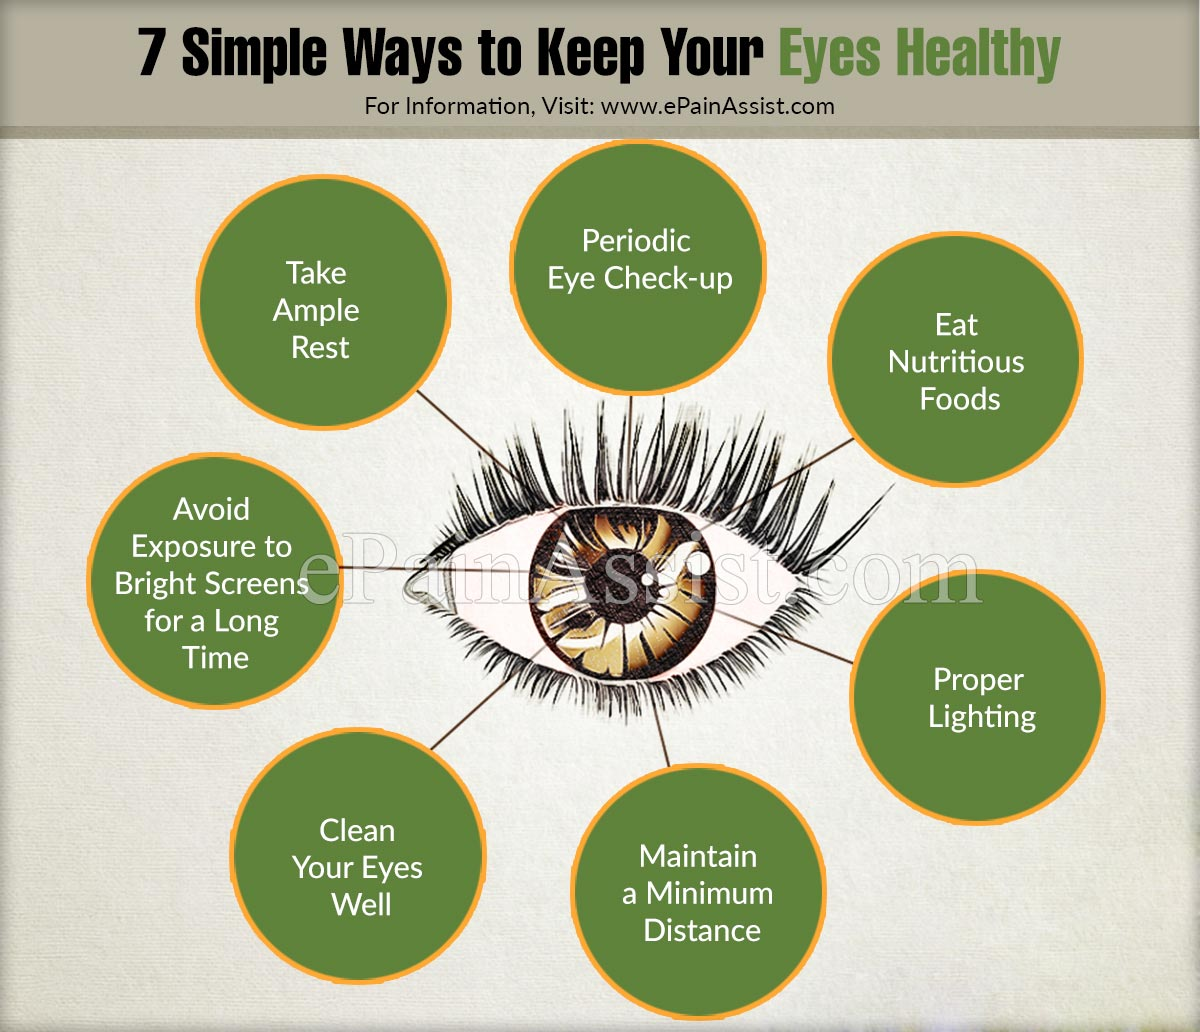 7 Simple Ways to Keep Your Eyes Healthy